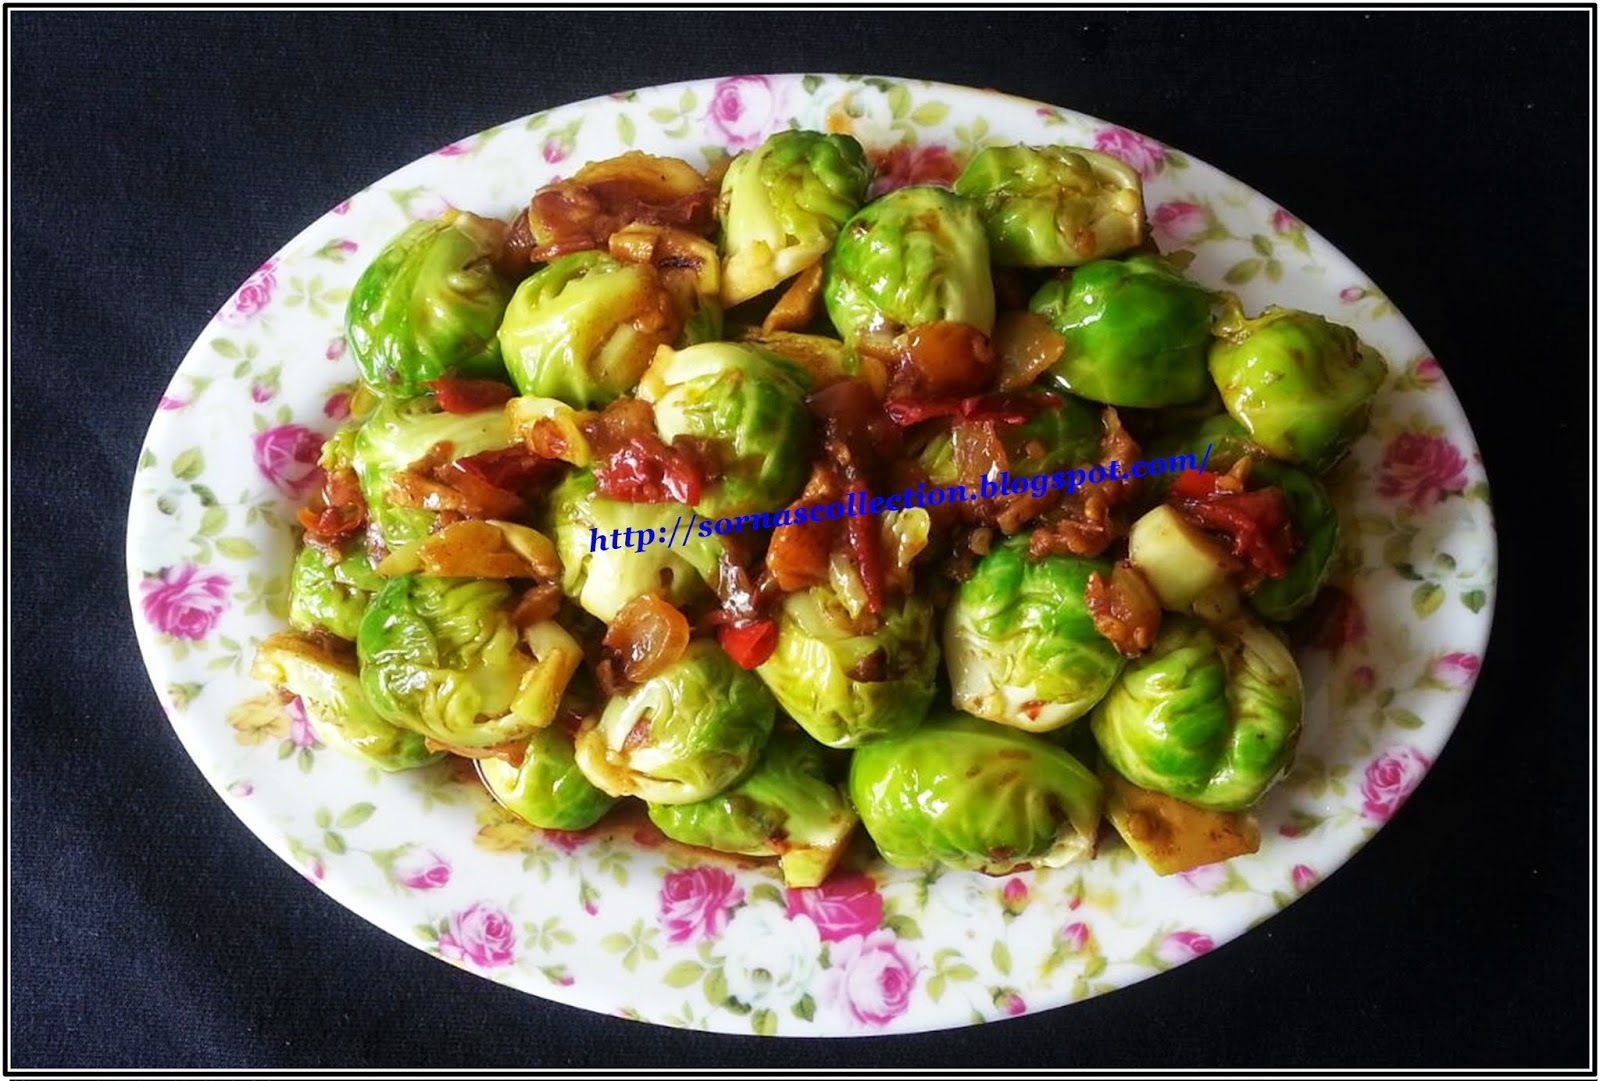 SWEET & SPICY BRUSSELS